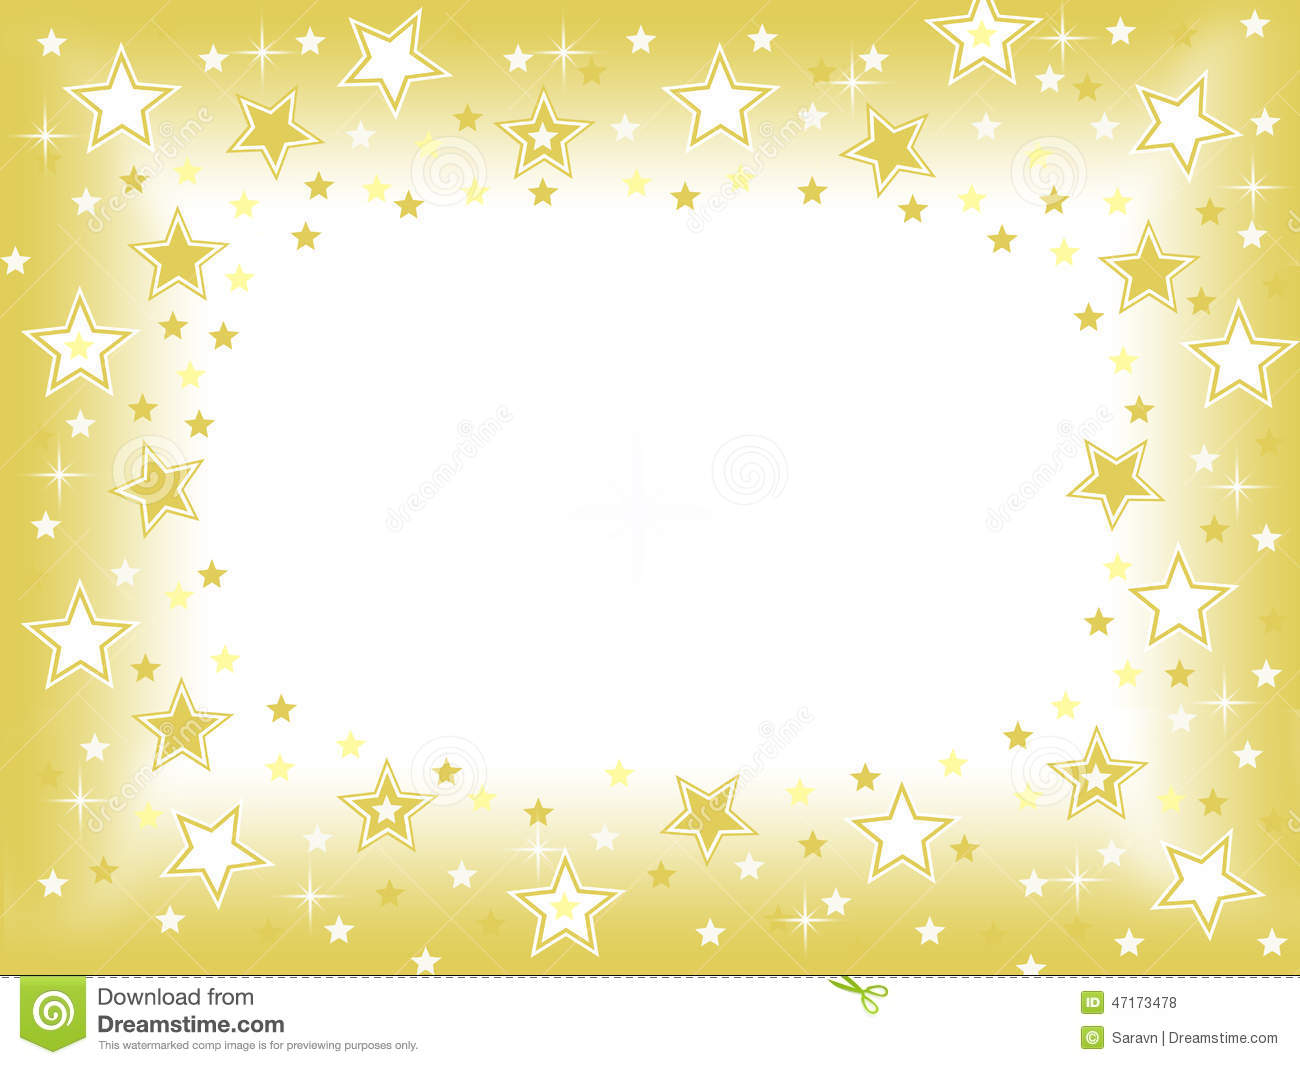 Falling Glitter Confetti Wallpapers Gold Star With Blank Space Celebration Background Stock